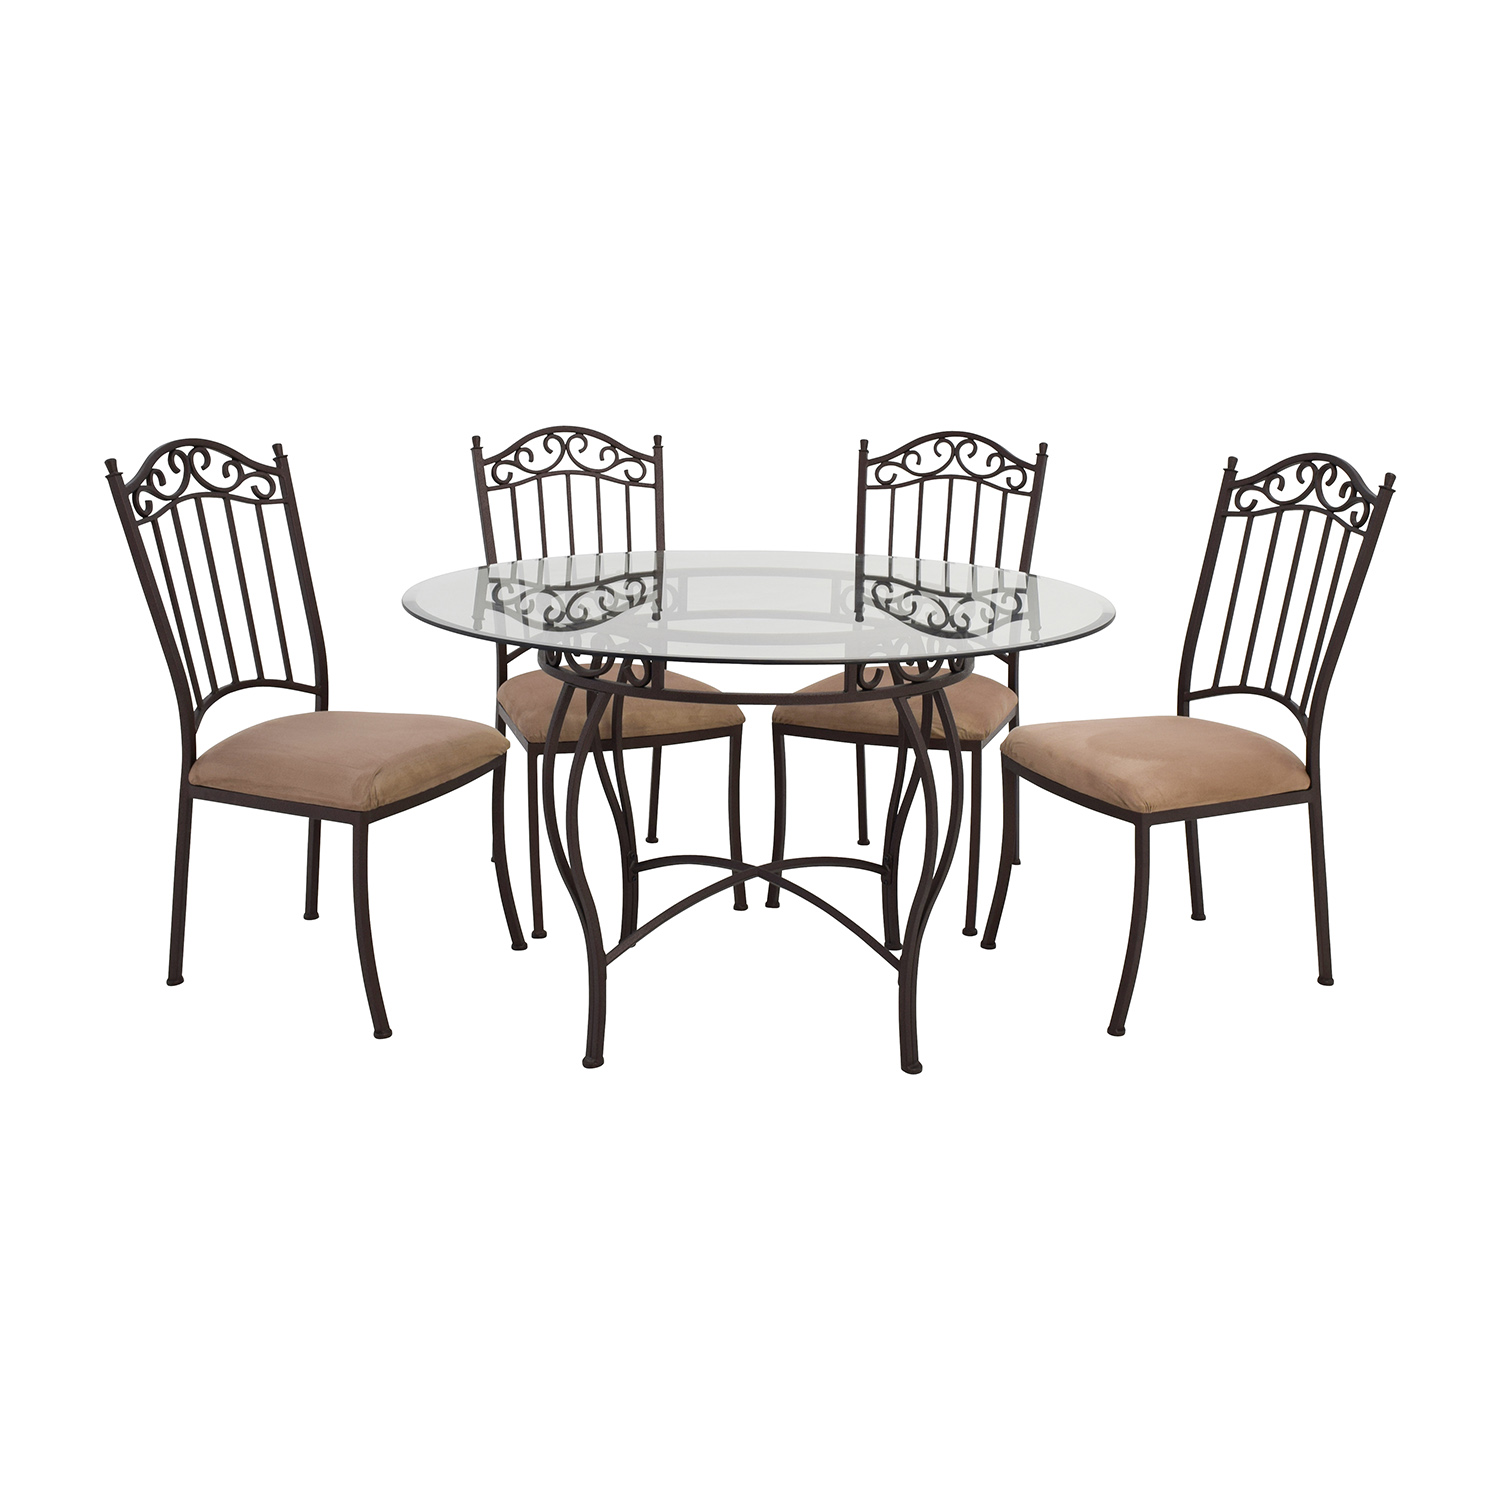 cae50210a1c4 72% OFF - Wrought Iron Round Glass Table and Chairs   Tables